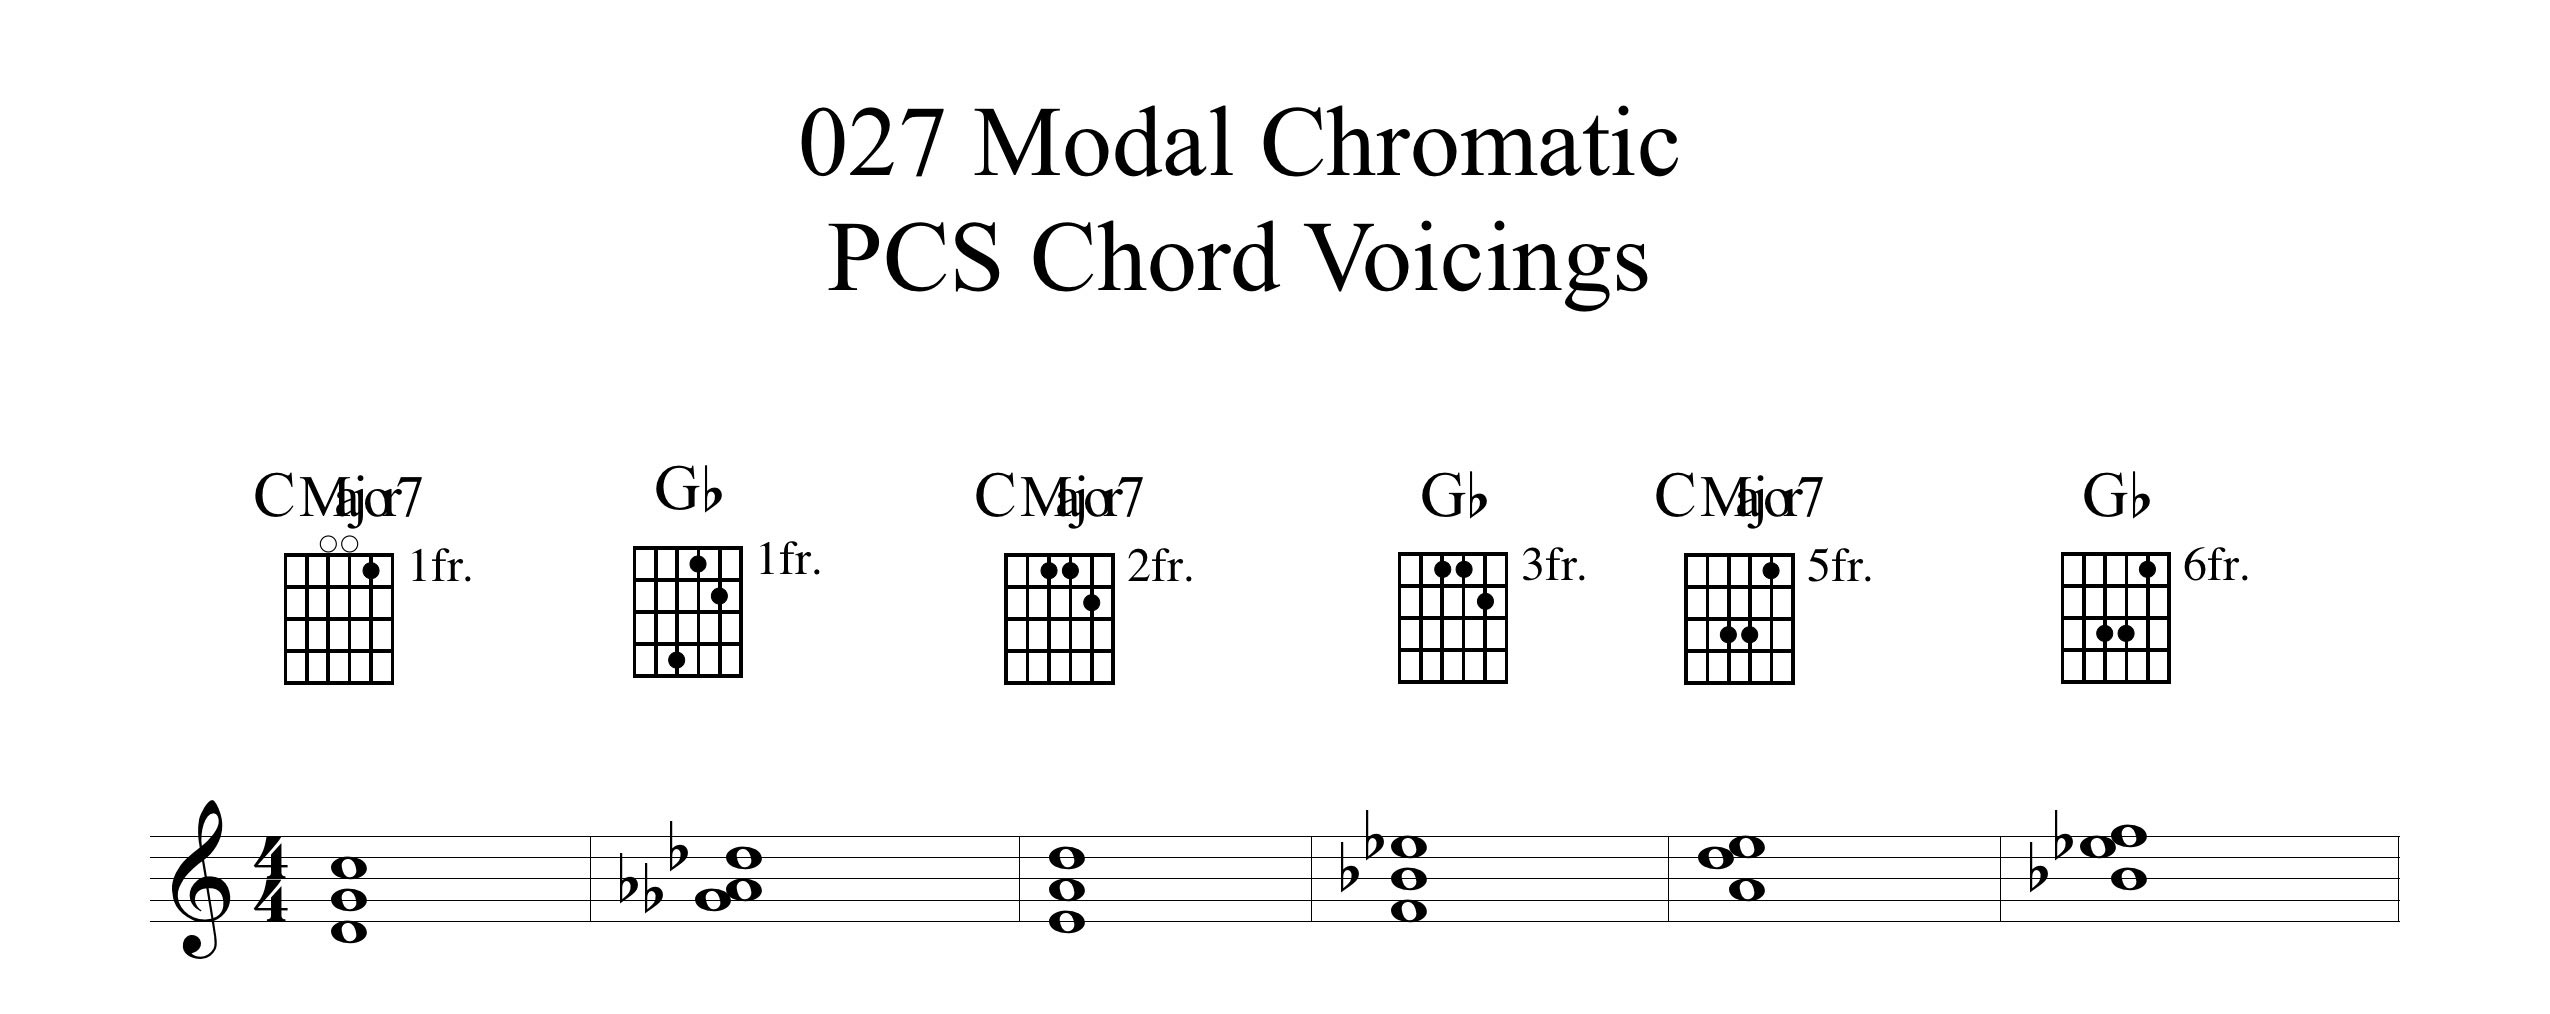 027-Modal-Chromatic-Pitch-Class-Set_Chord-Voicings-027-excerpt-by-Bruce-Arnold-for-Muse-Eek-Publishing